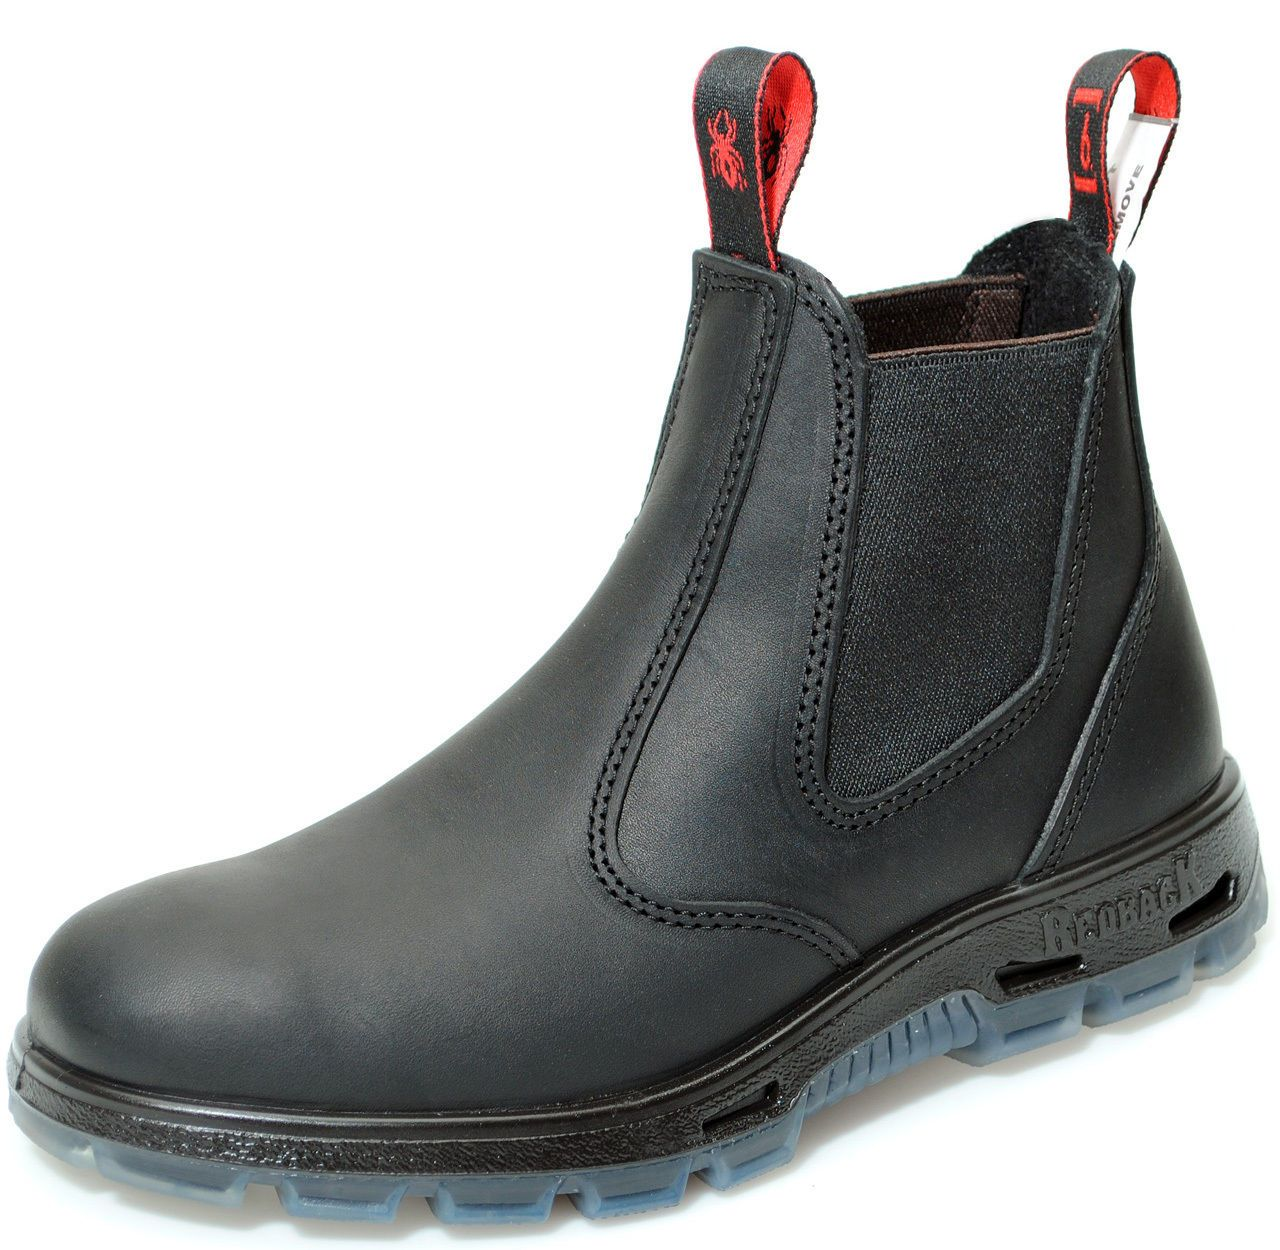 Redback UBBK Black Non Safety Boots - Australian Elastic Sided Boots